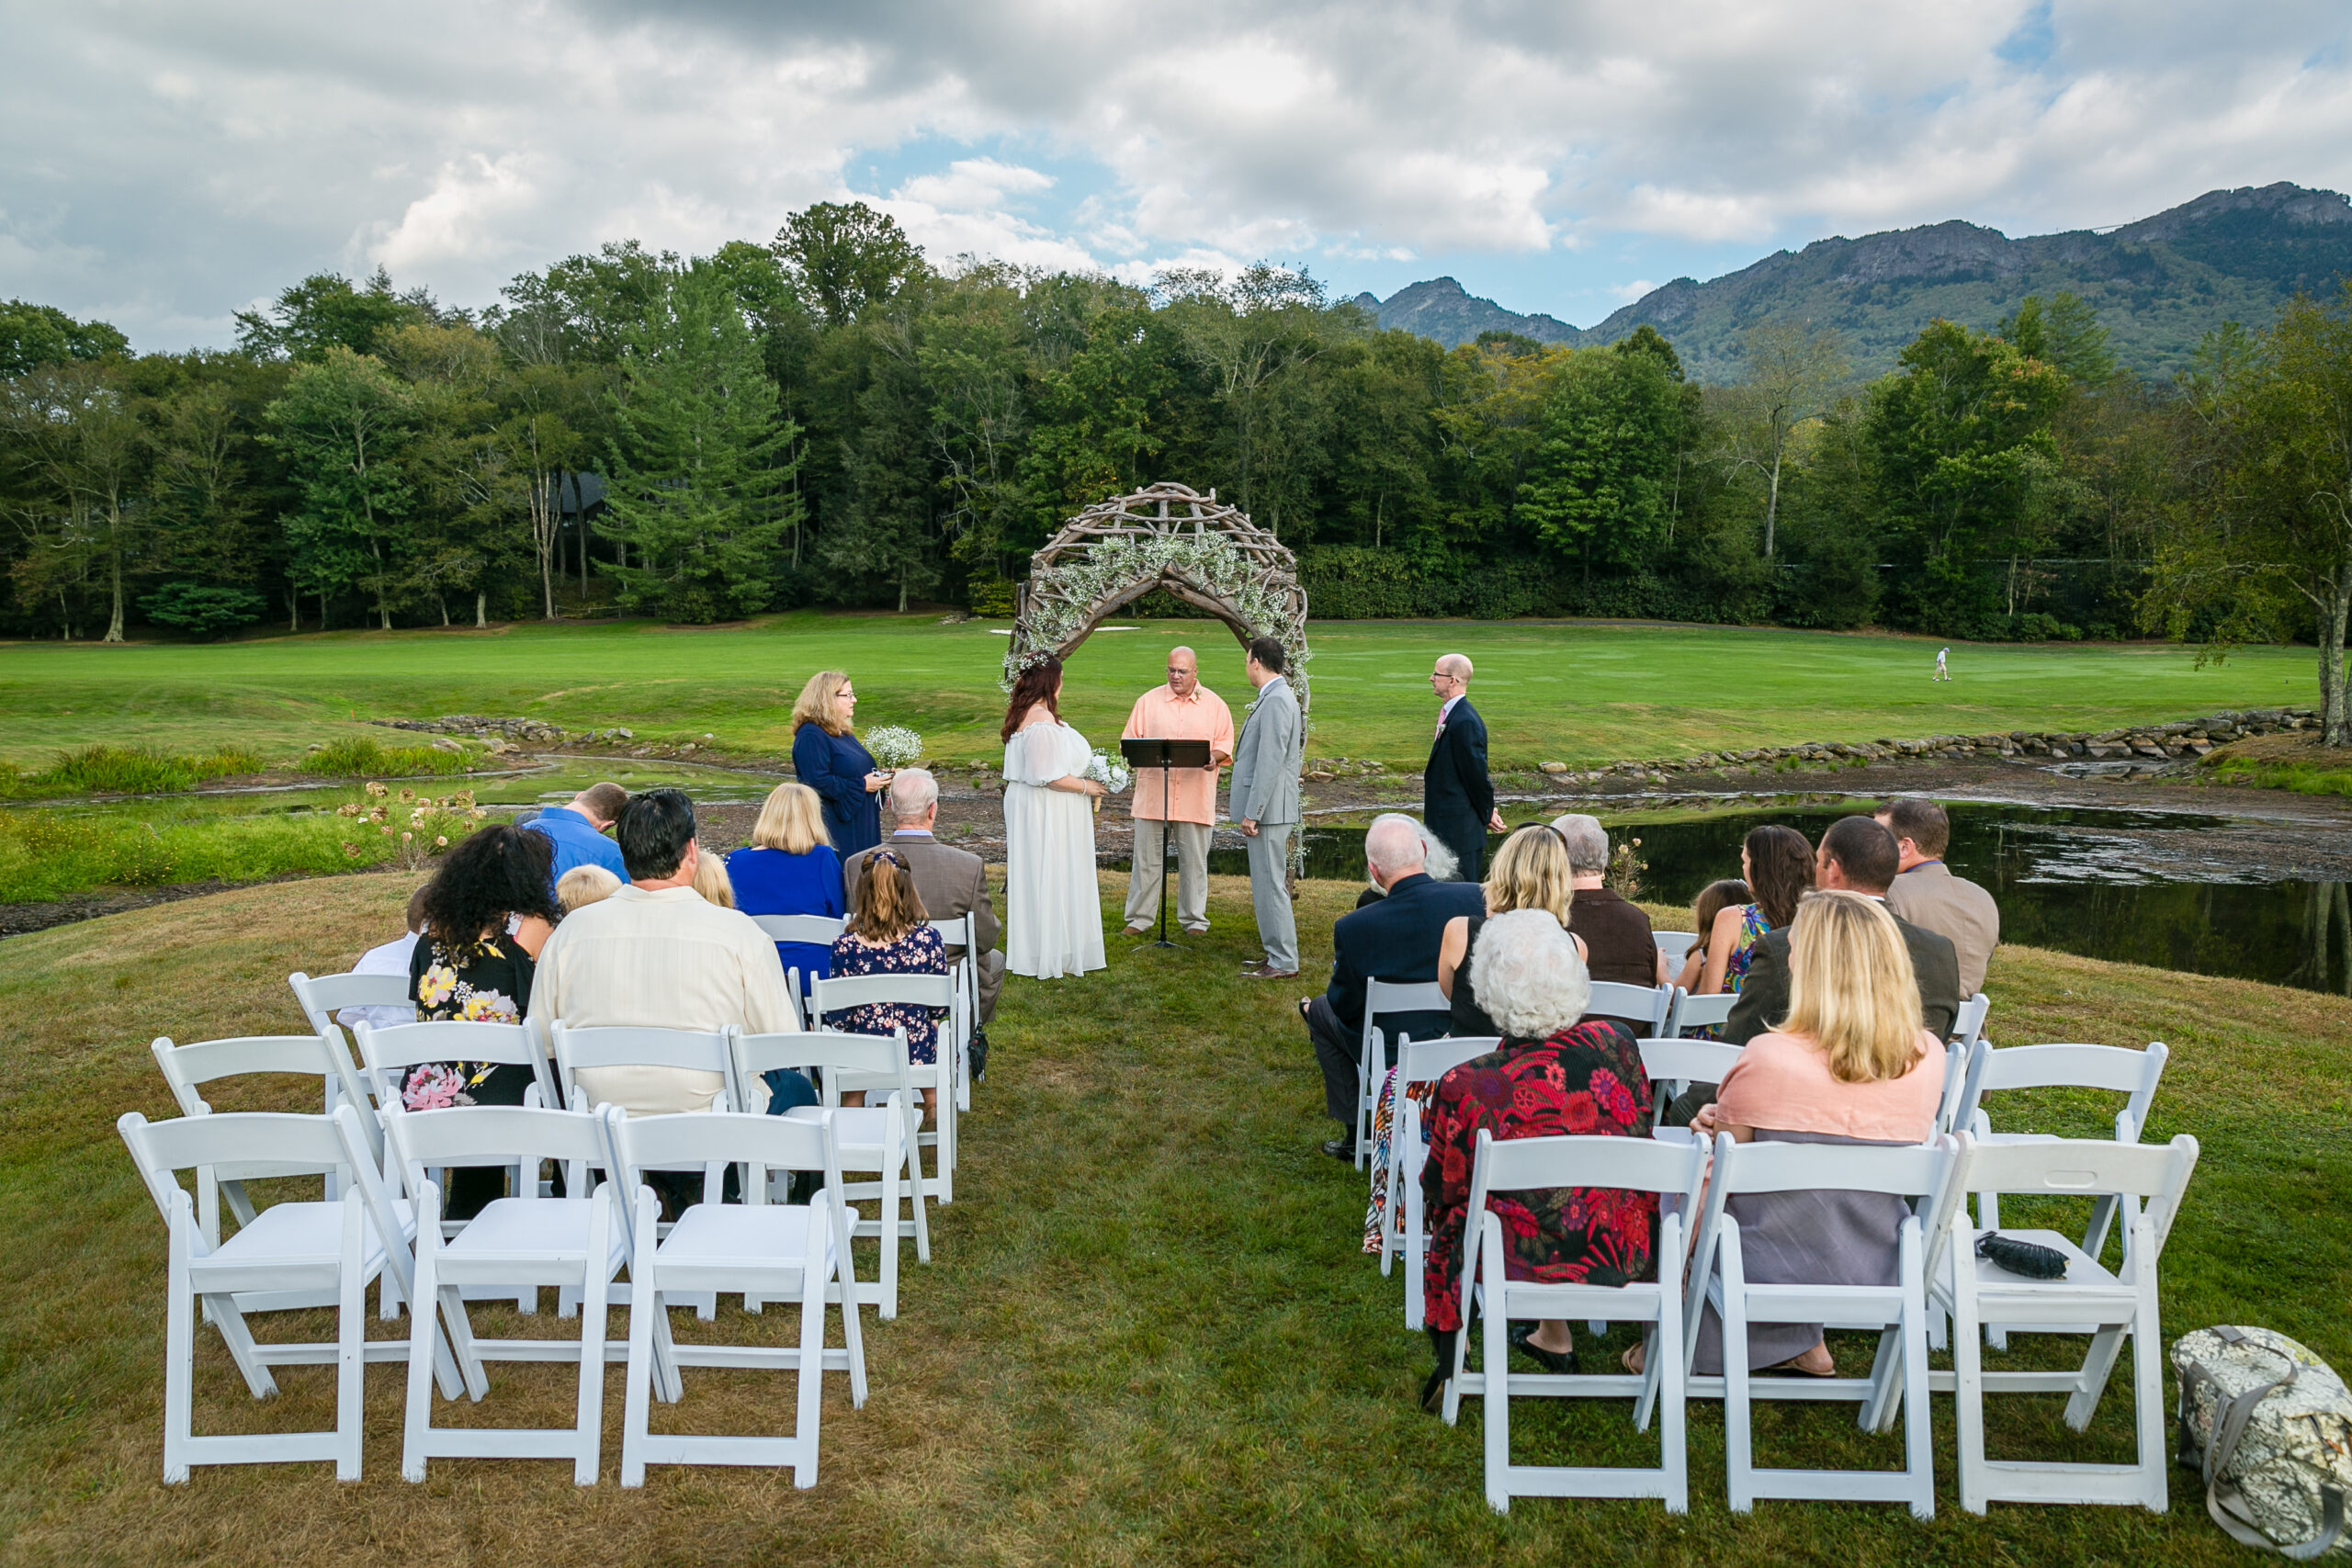 Grandfather Golf and Country Club,Linville,North Carolina,Rodney Smith Photography,bride,groom,nc,ncbride,ncgroom,rodneysmithweddings,